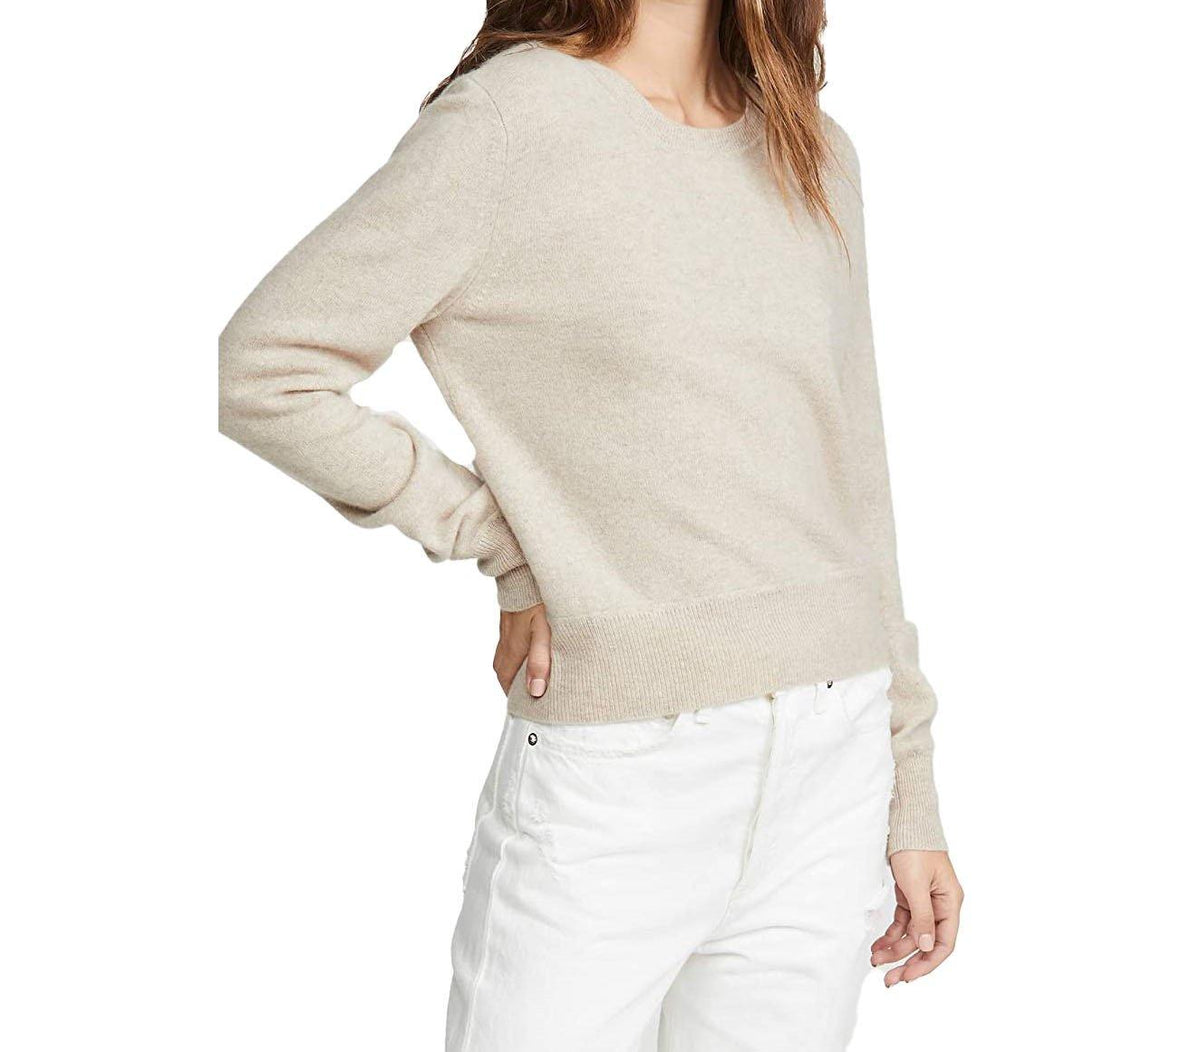 Cashmere Crew Neck Pullover - Oatmeal - Wheat Boutique